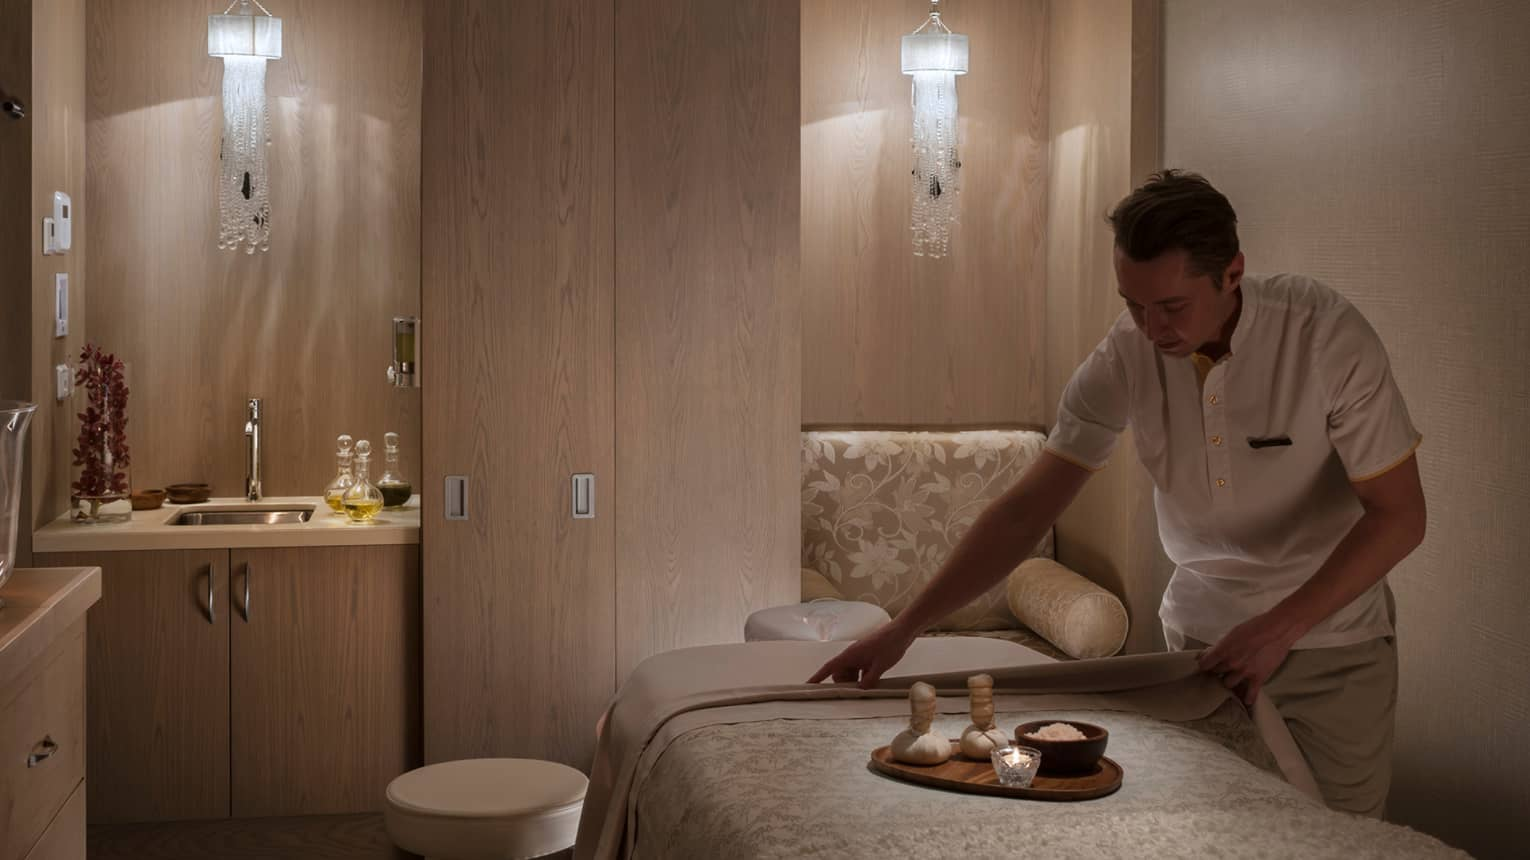 Spa staff in uniform places tray with candle votive, bowl of salt on massage bed